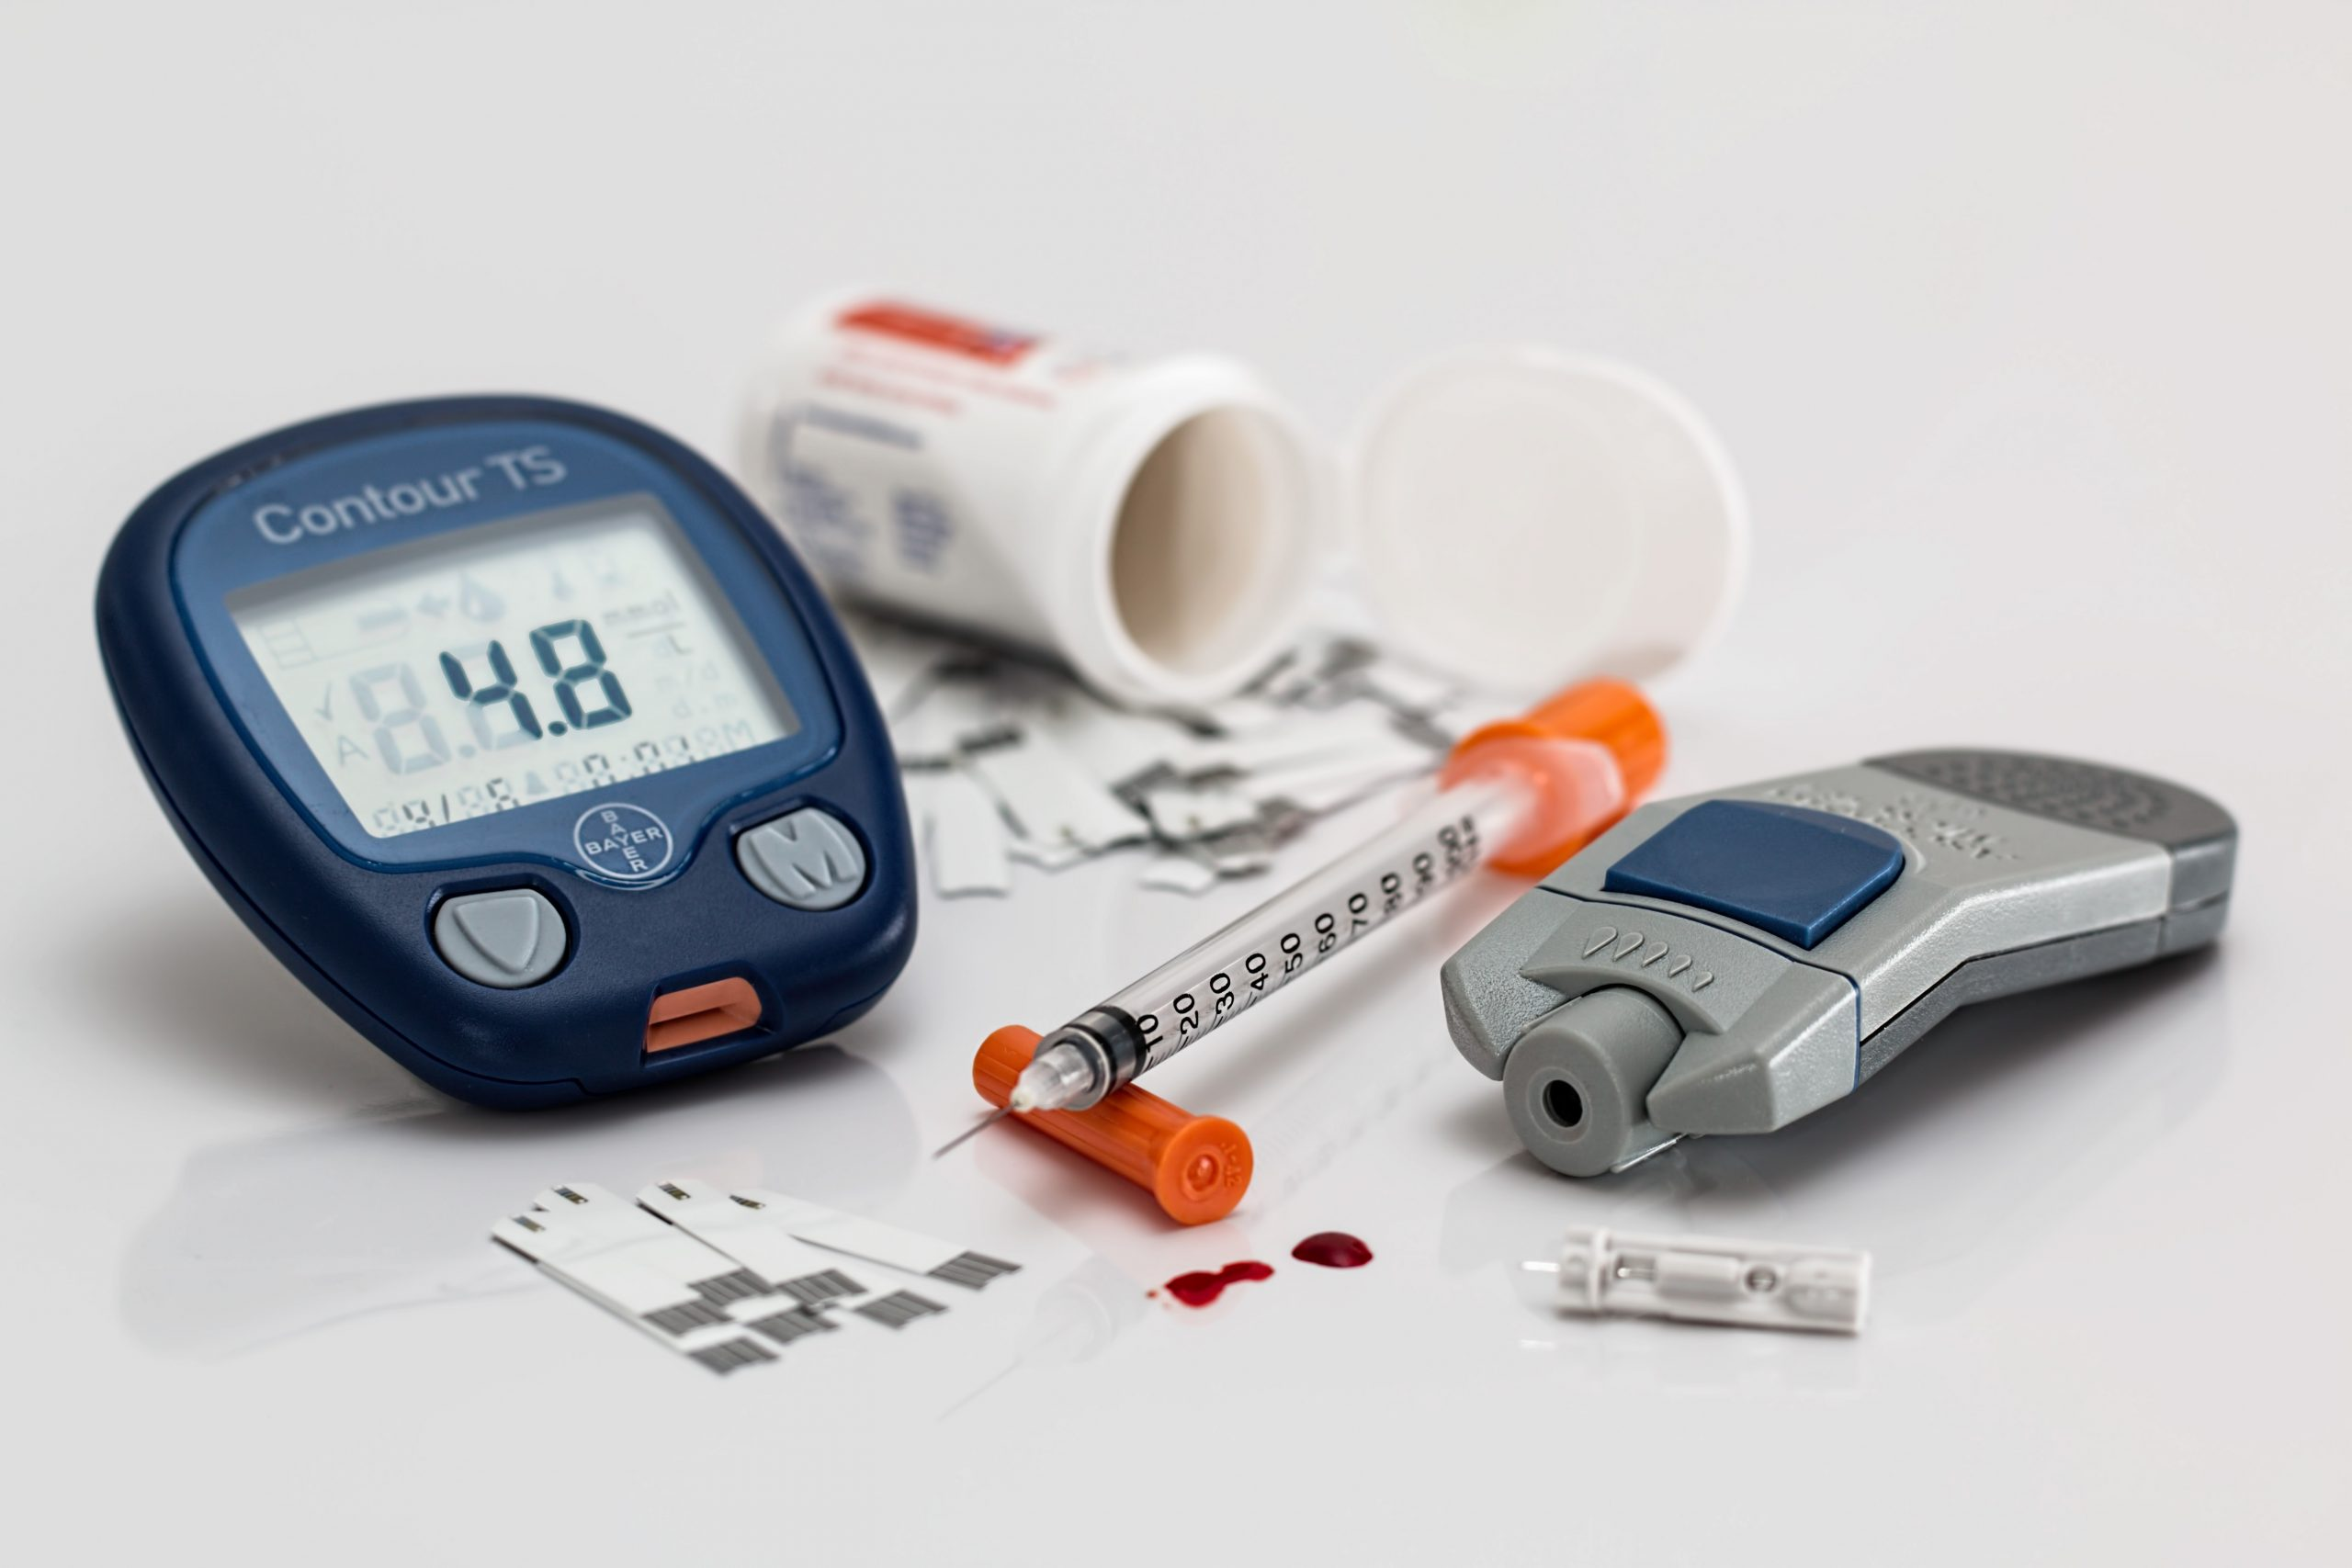 blood glucose monitoring and insulin injection tools for people with diabetes